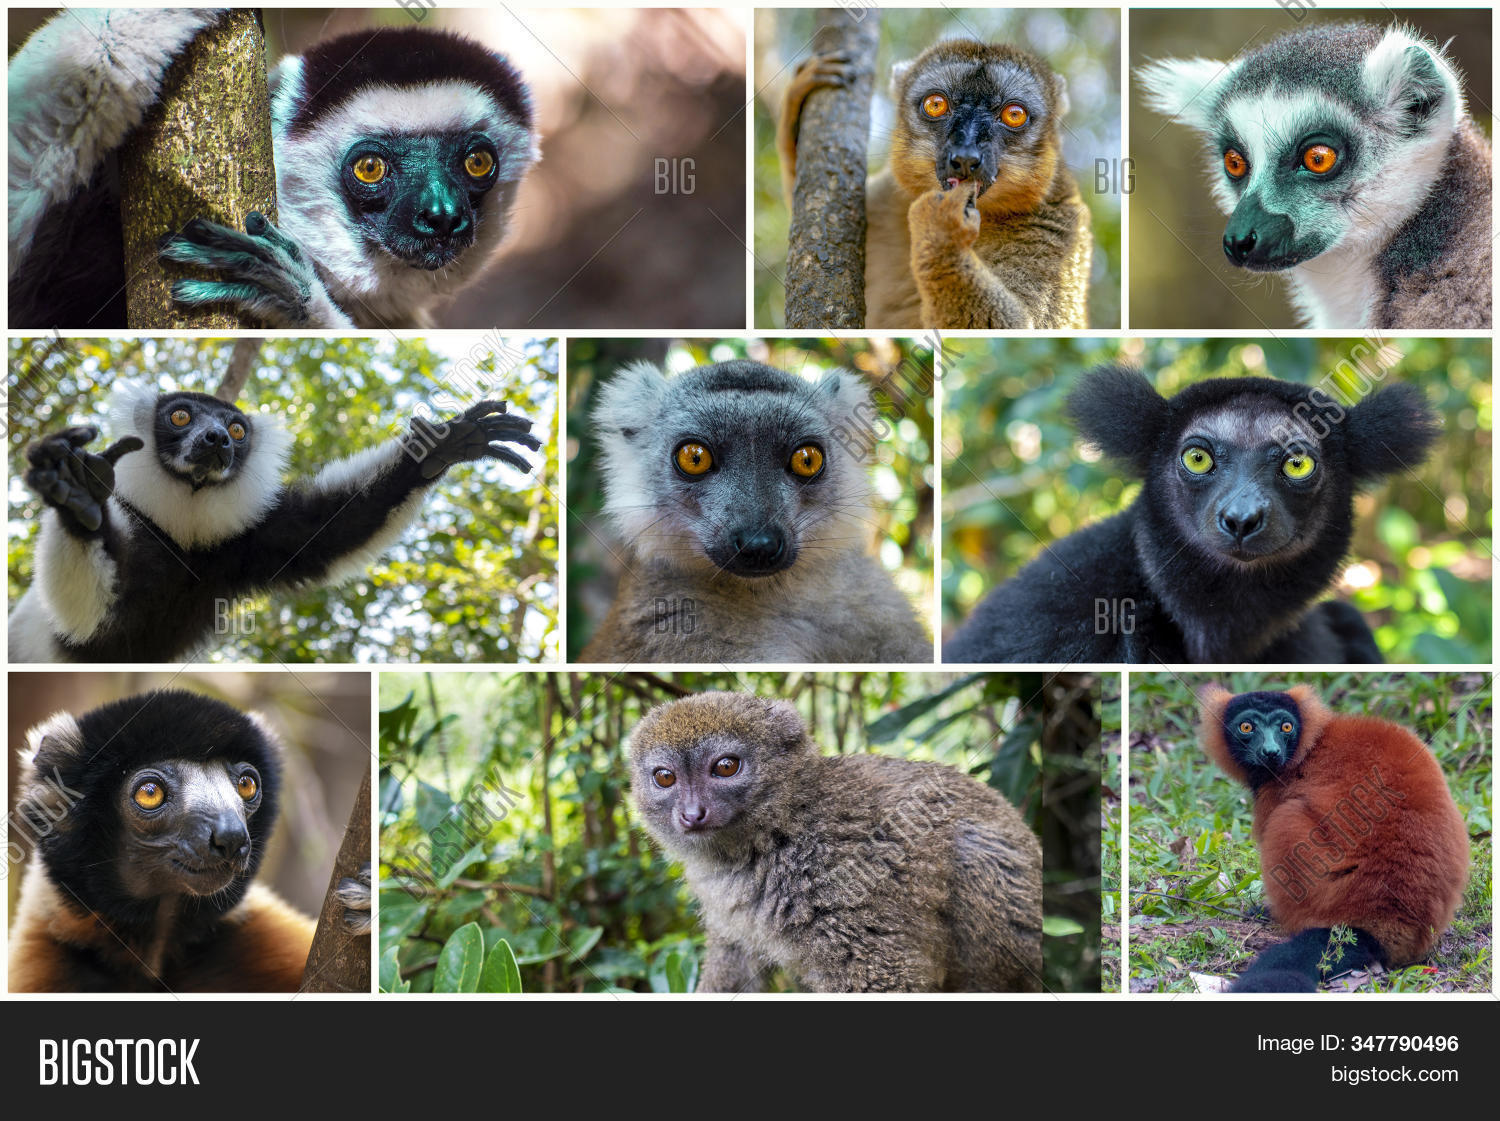 Collage Of Beautiful Lemurs, Different Types Of Lemurs - Endemic. Species Which Is Restricted To A S